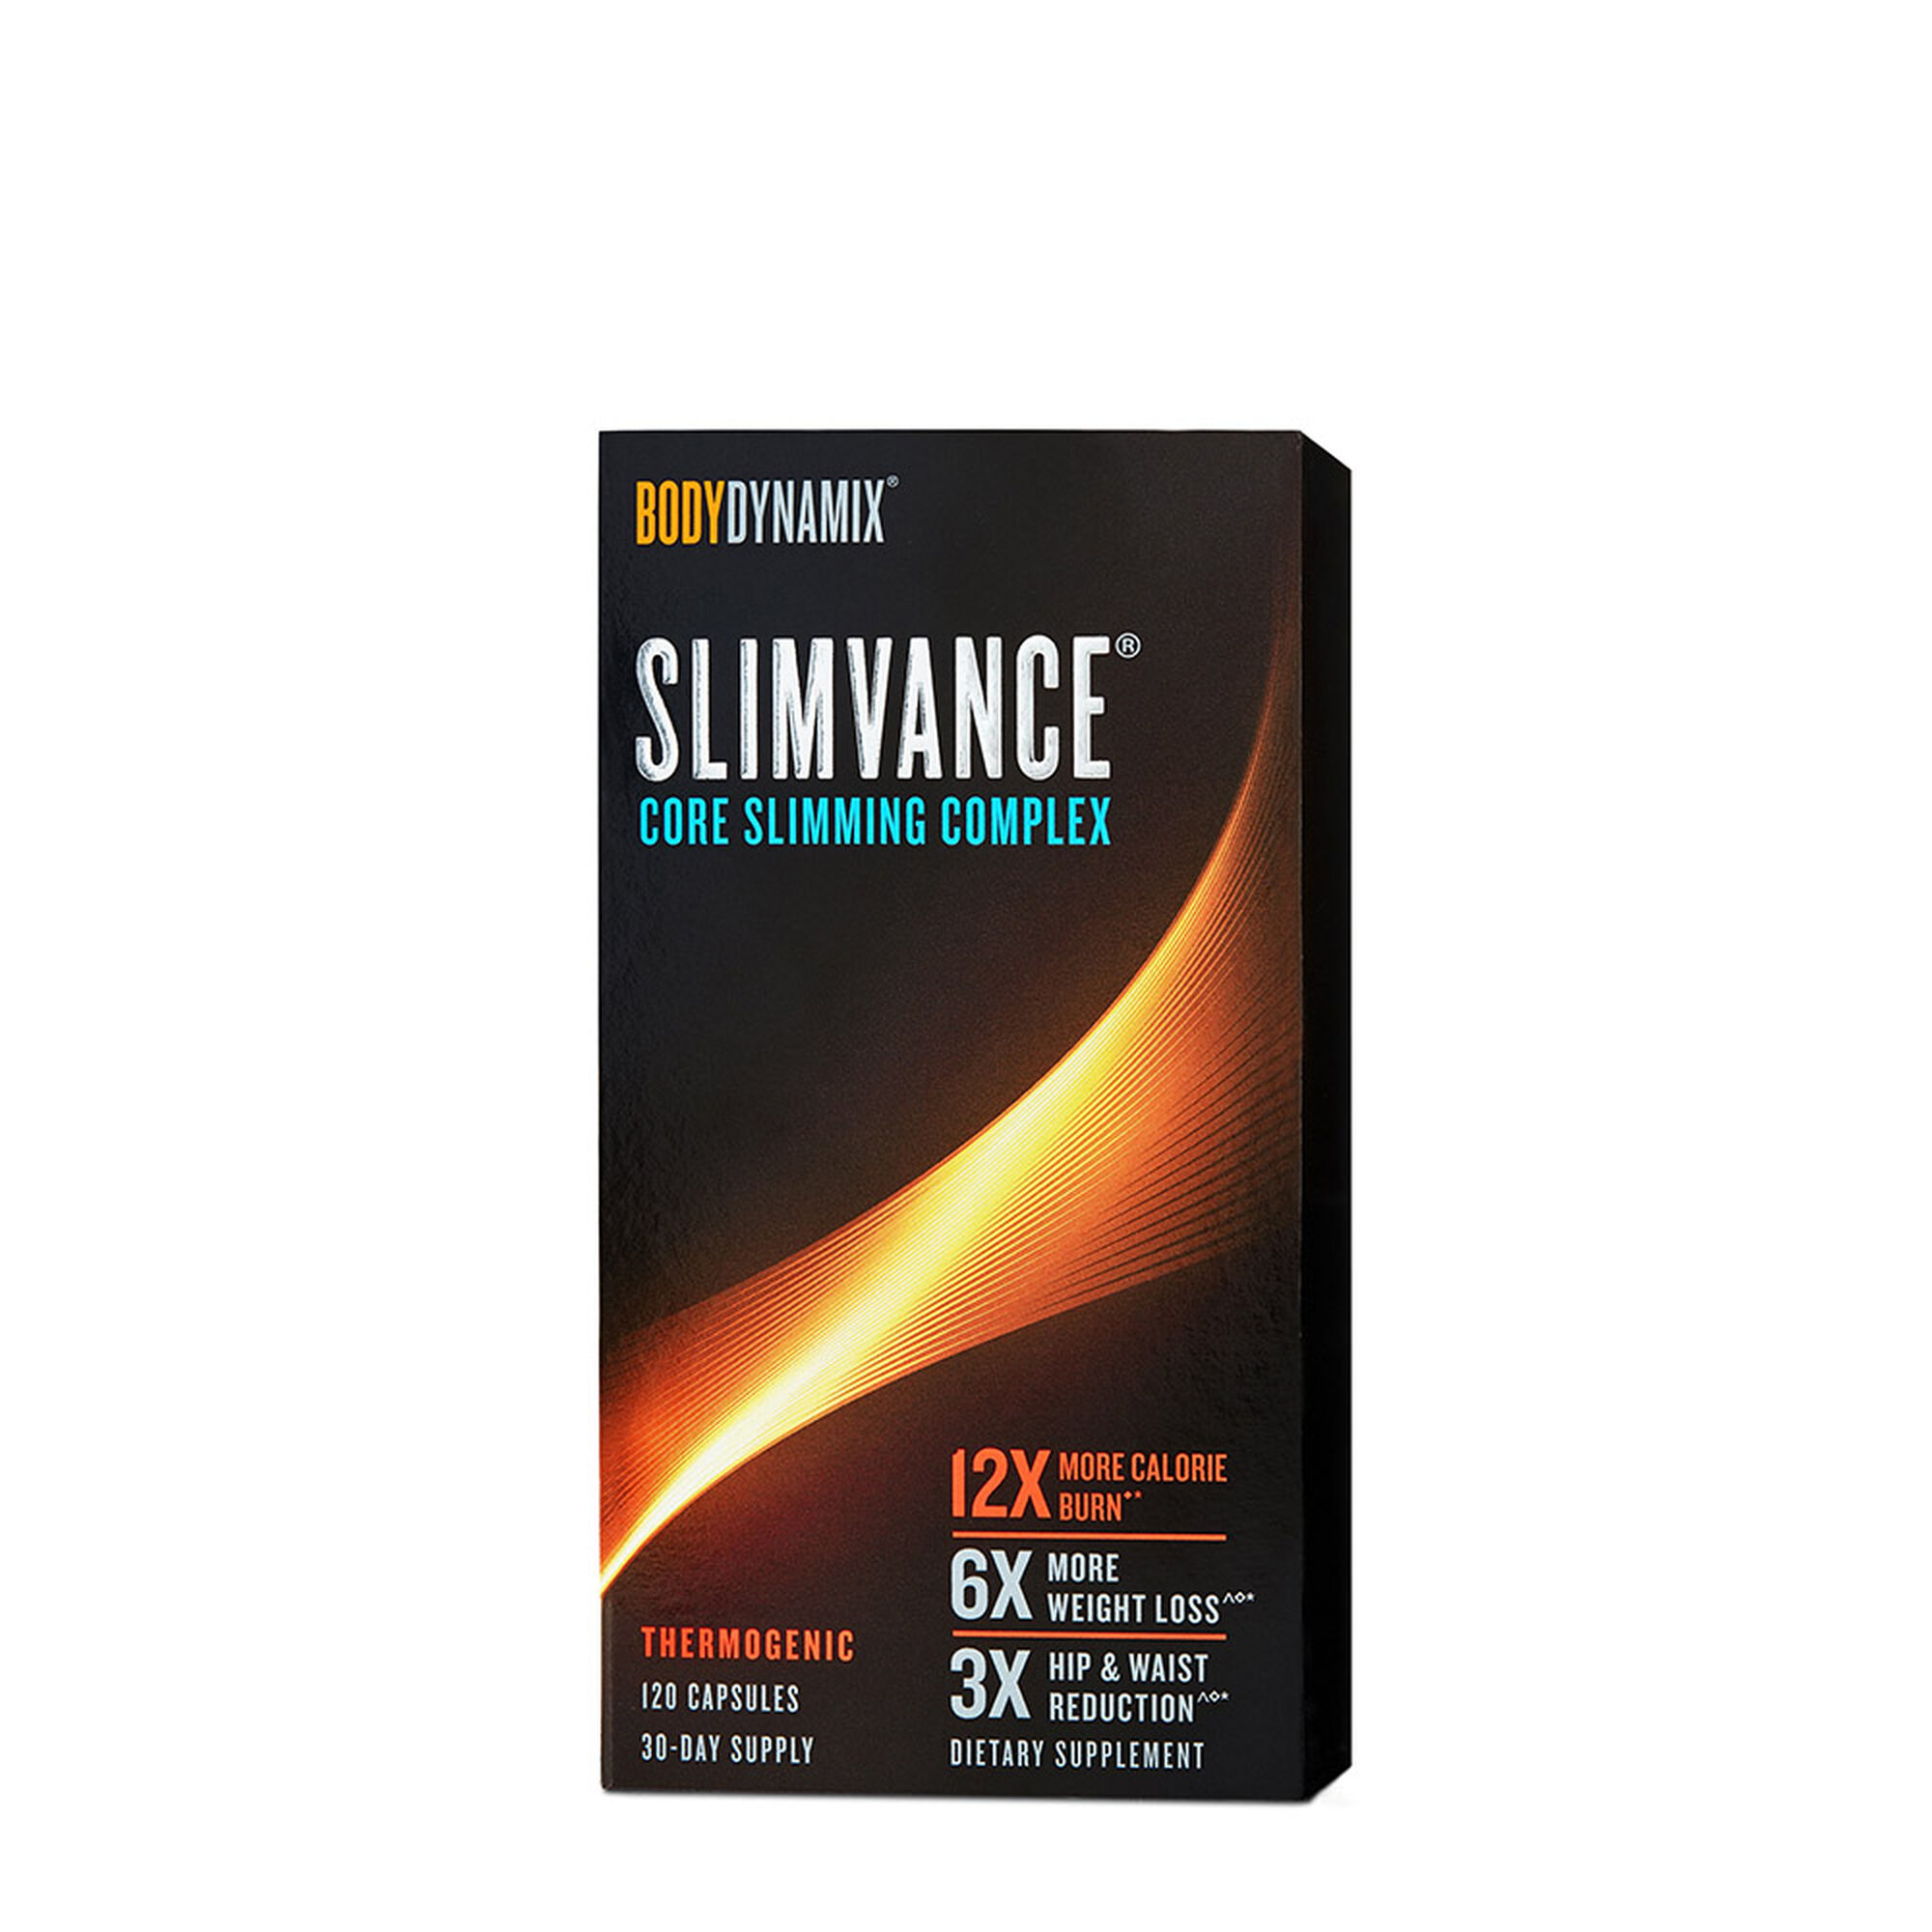 BODYDYNAMIX SLIMVANCE CORE SLIMMING COMPLEX 120 Caps Lose Weight Lose Inches weight loss Cleaning Brushes  - AliExpress